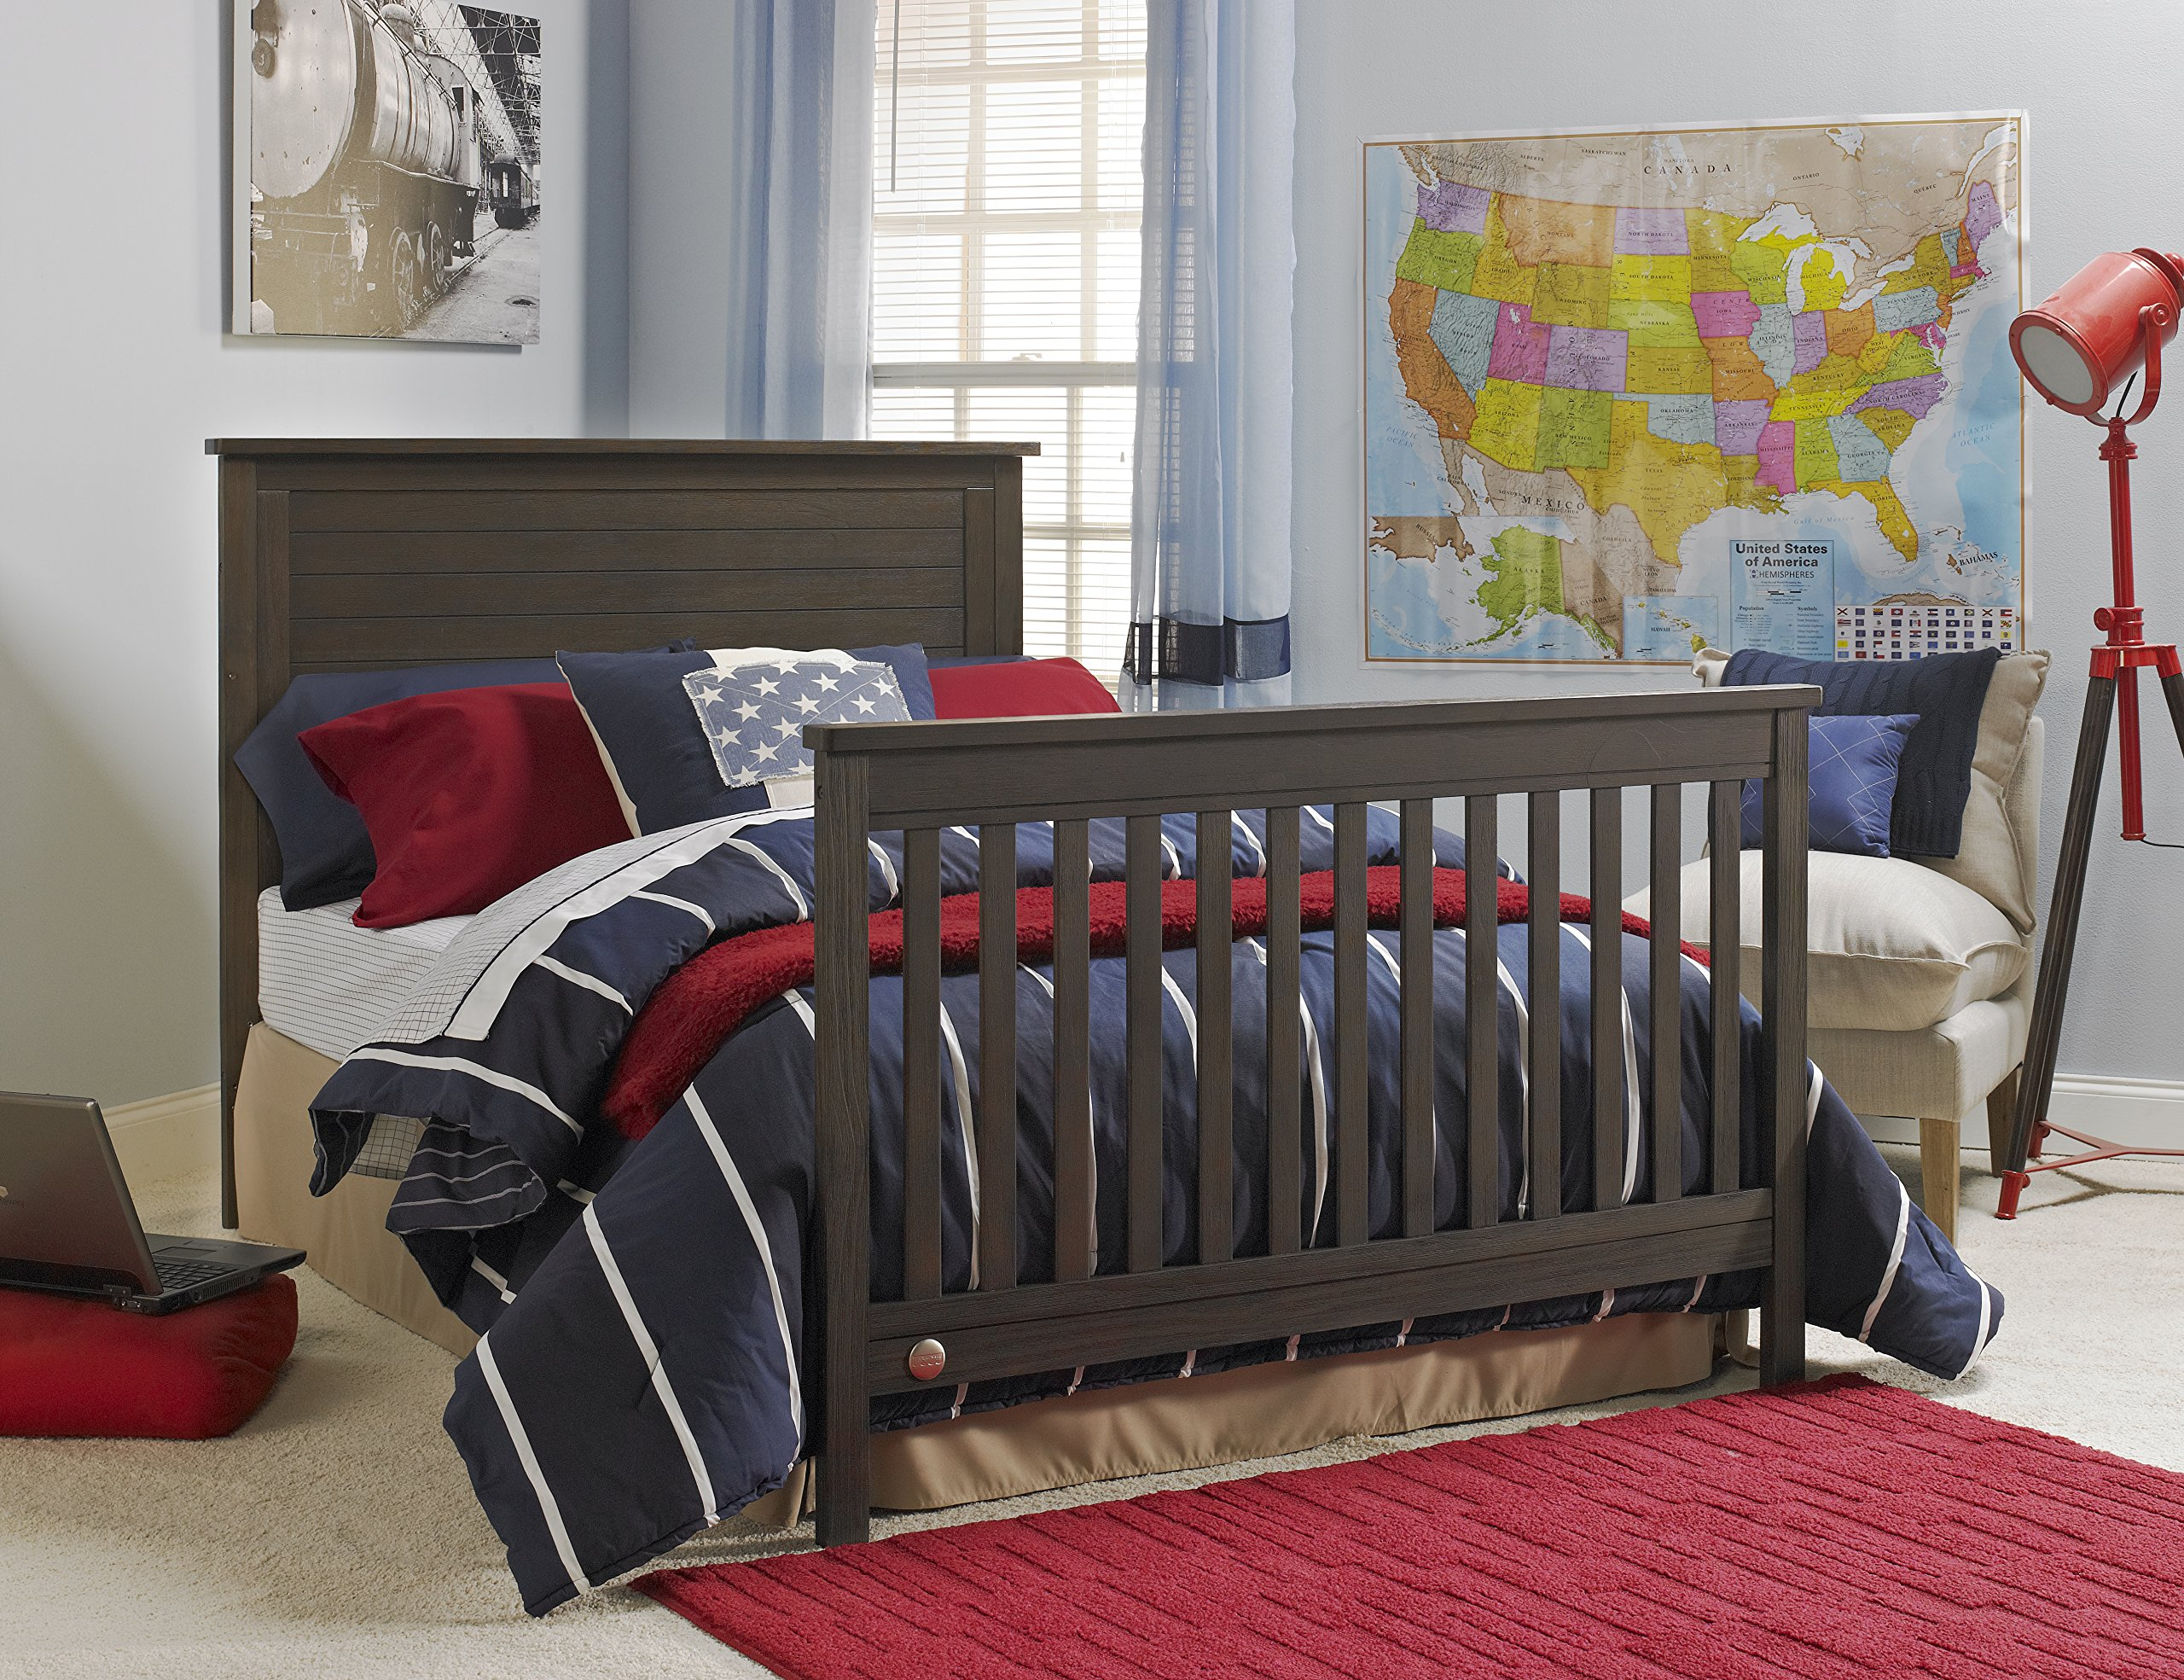 Fisher-Price Quinn 4 in 1 Convertible Crib, Wire Brushed Brown by Fisher-Price (Image #5)